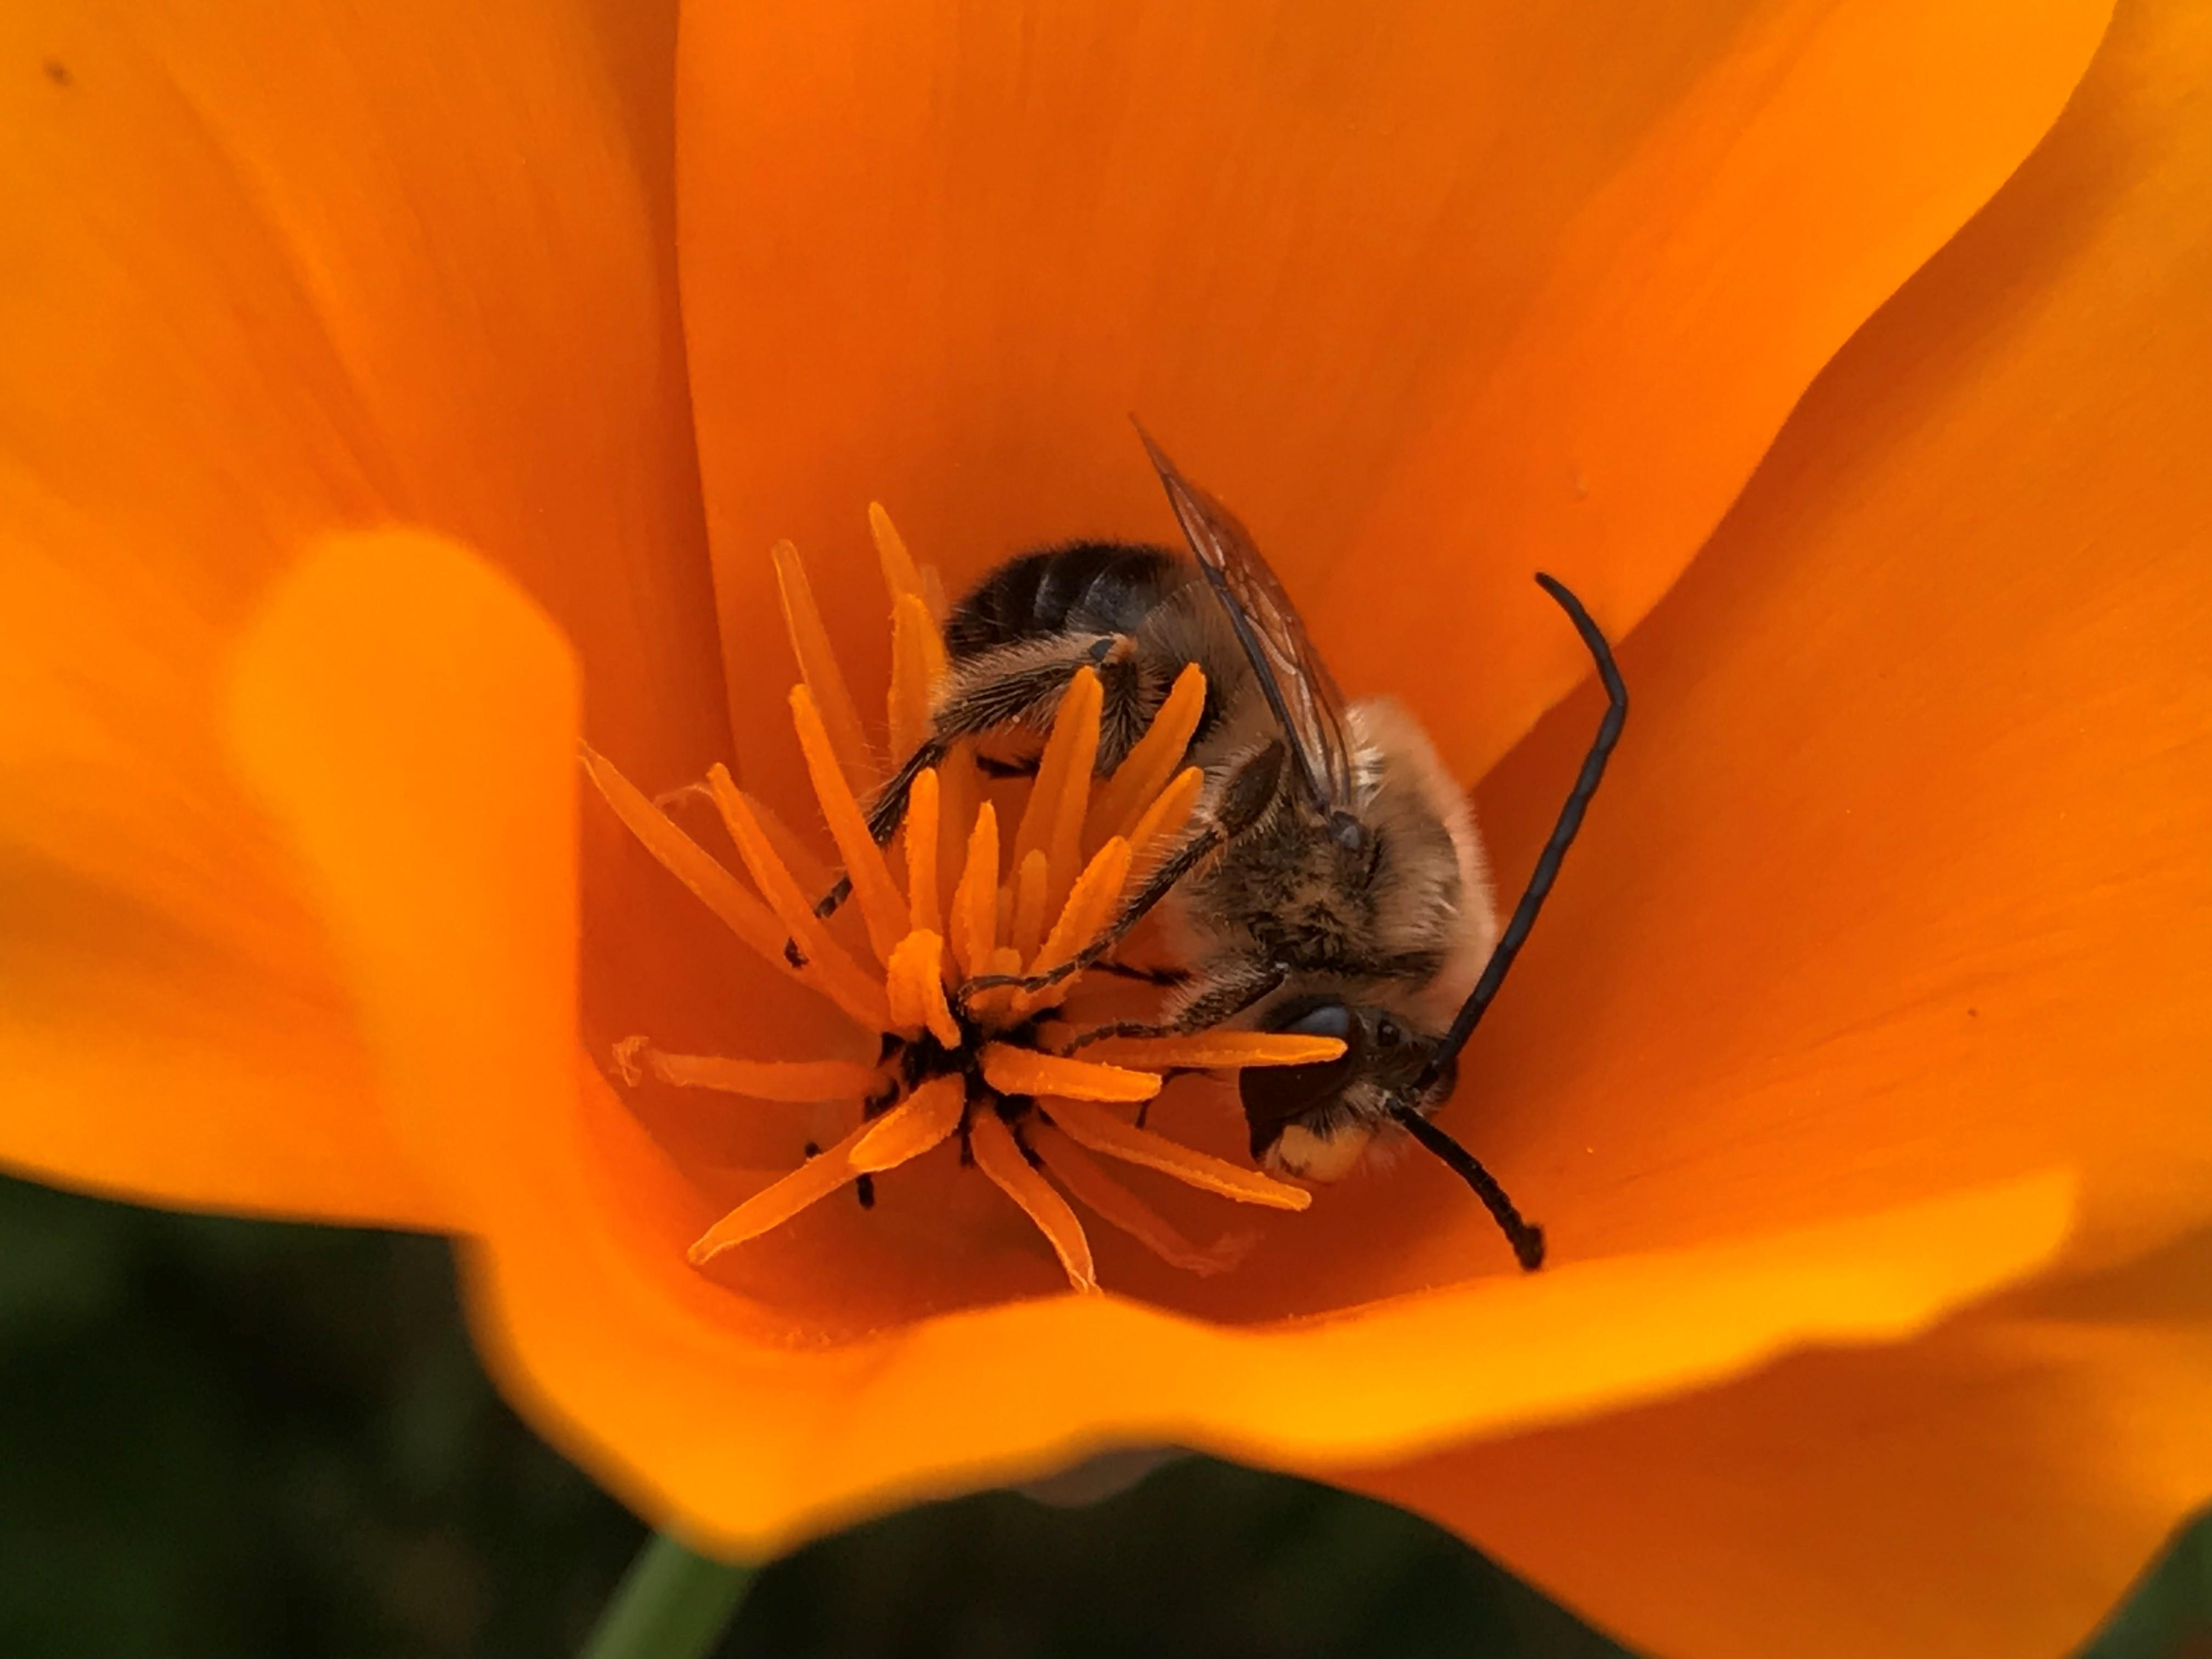 Honey bees and native bees are estimated to support $18 to $27 billion in crop yields each year in the United States.